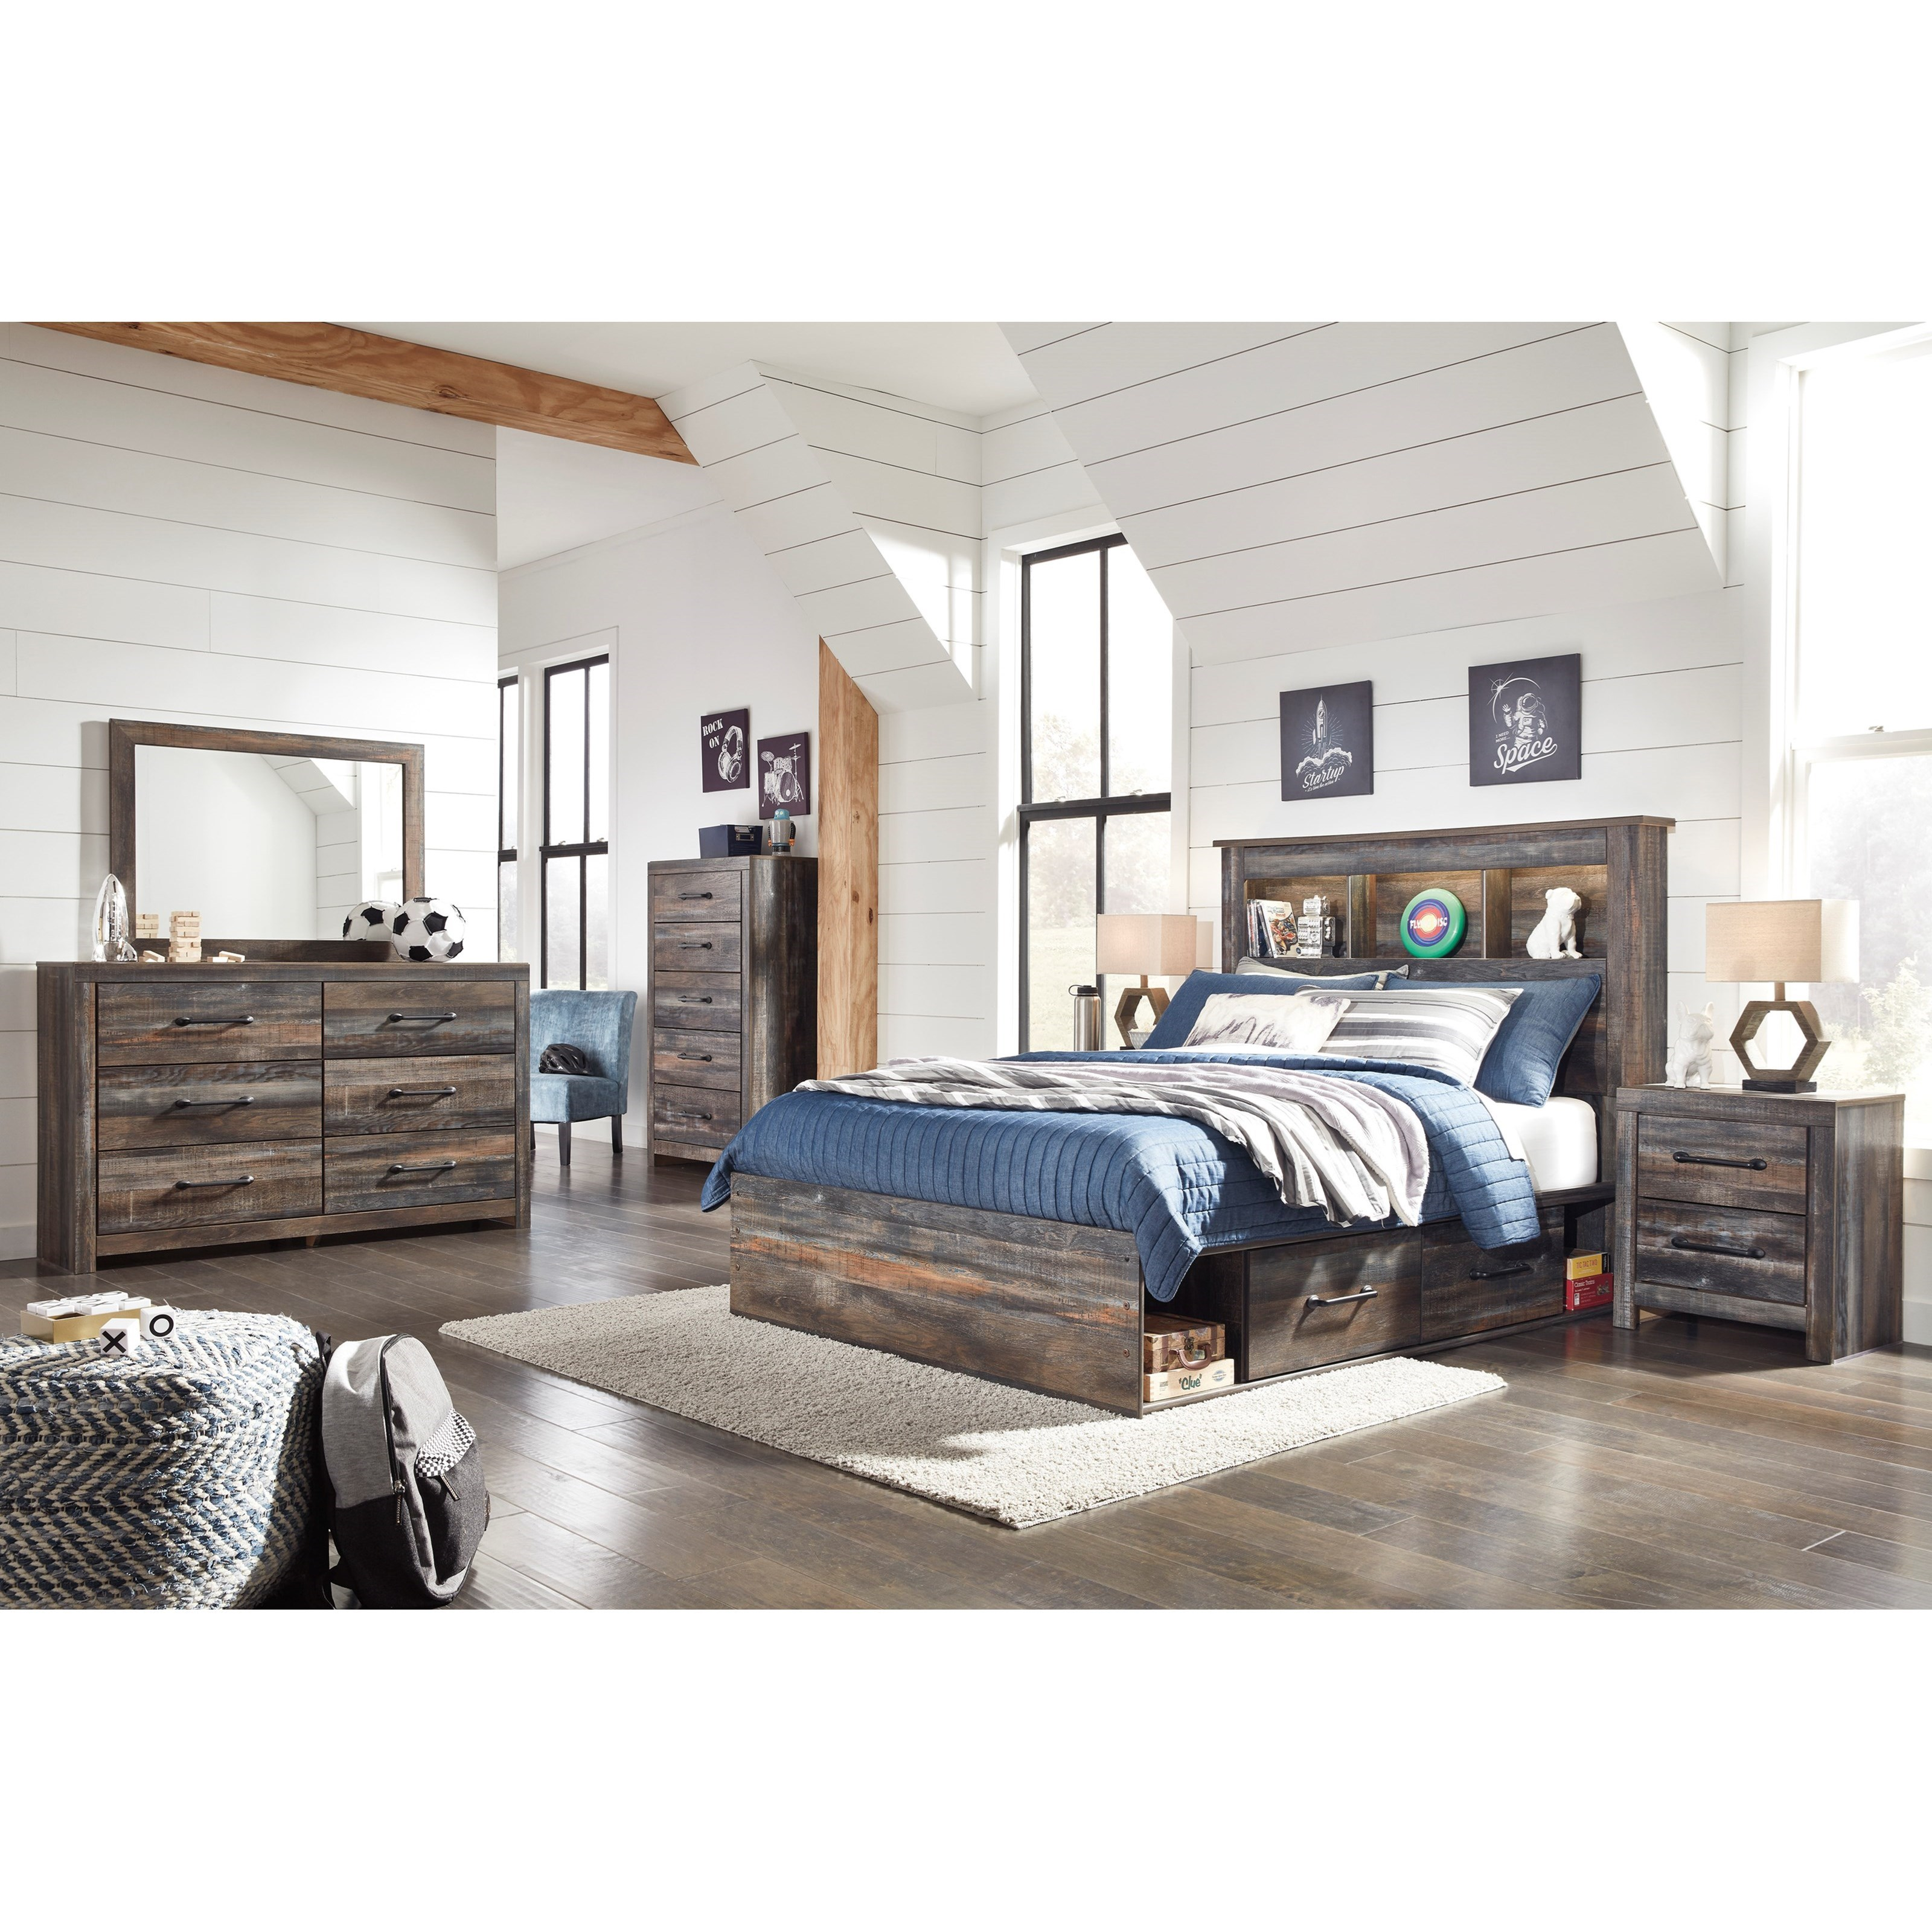 Drystan Full Bedroom Group by Signature Design by Ashley at Sparks HomeStore